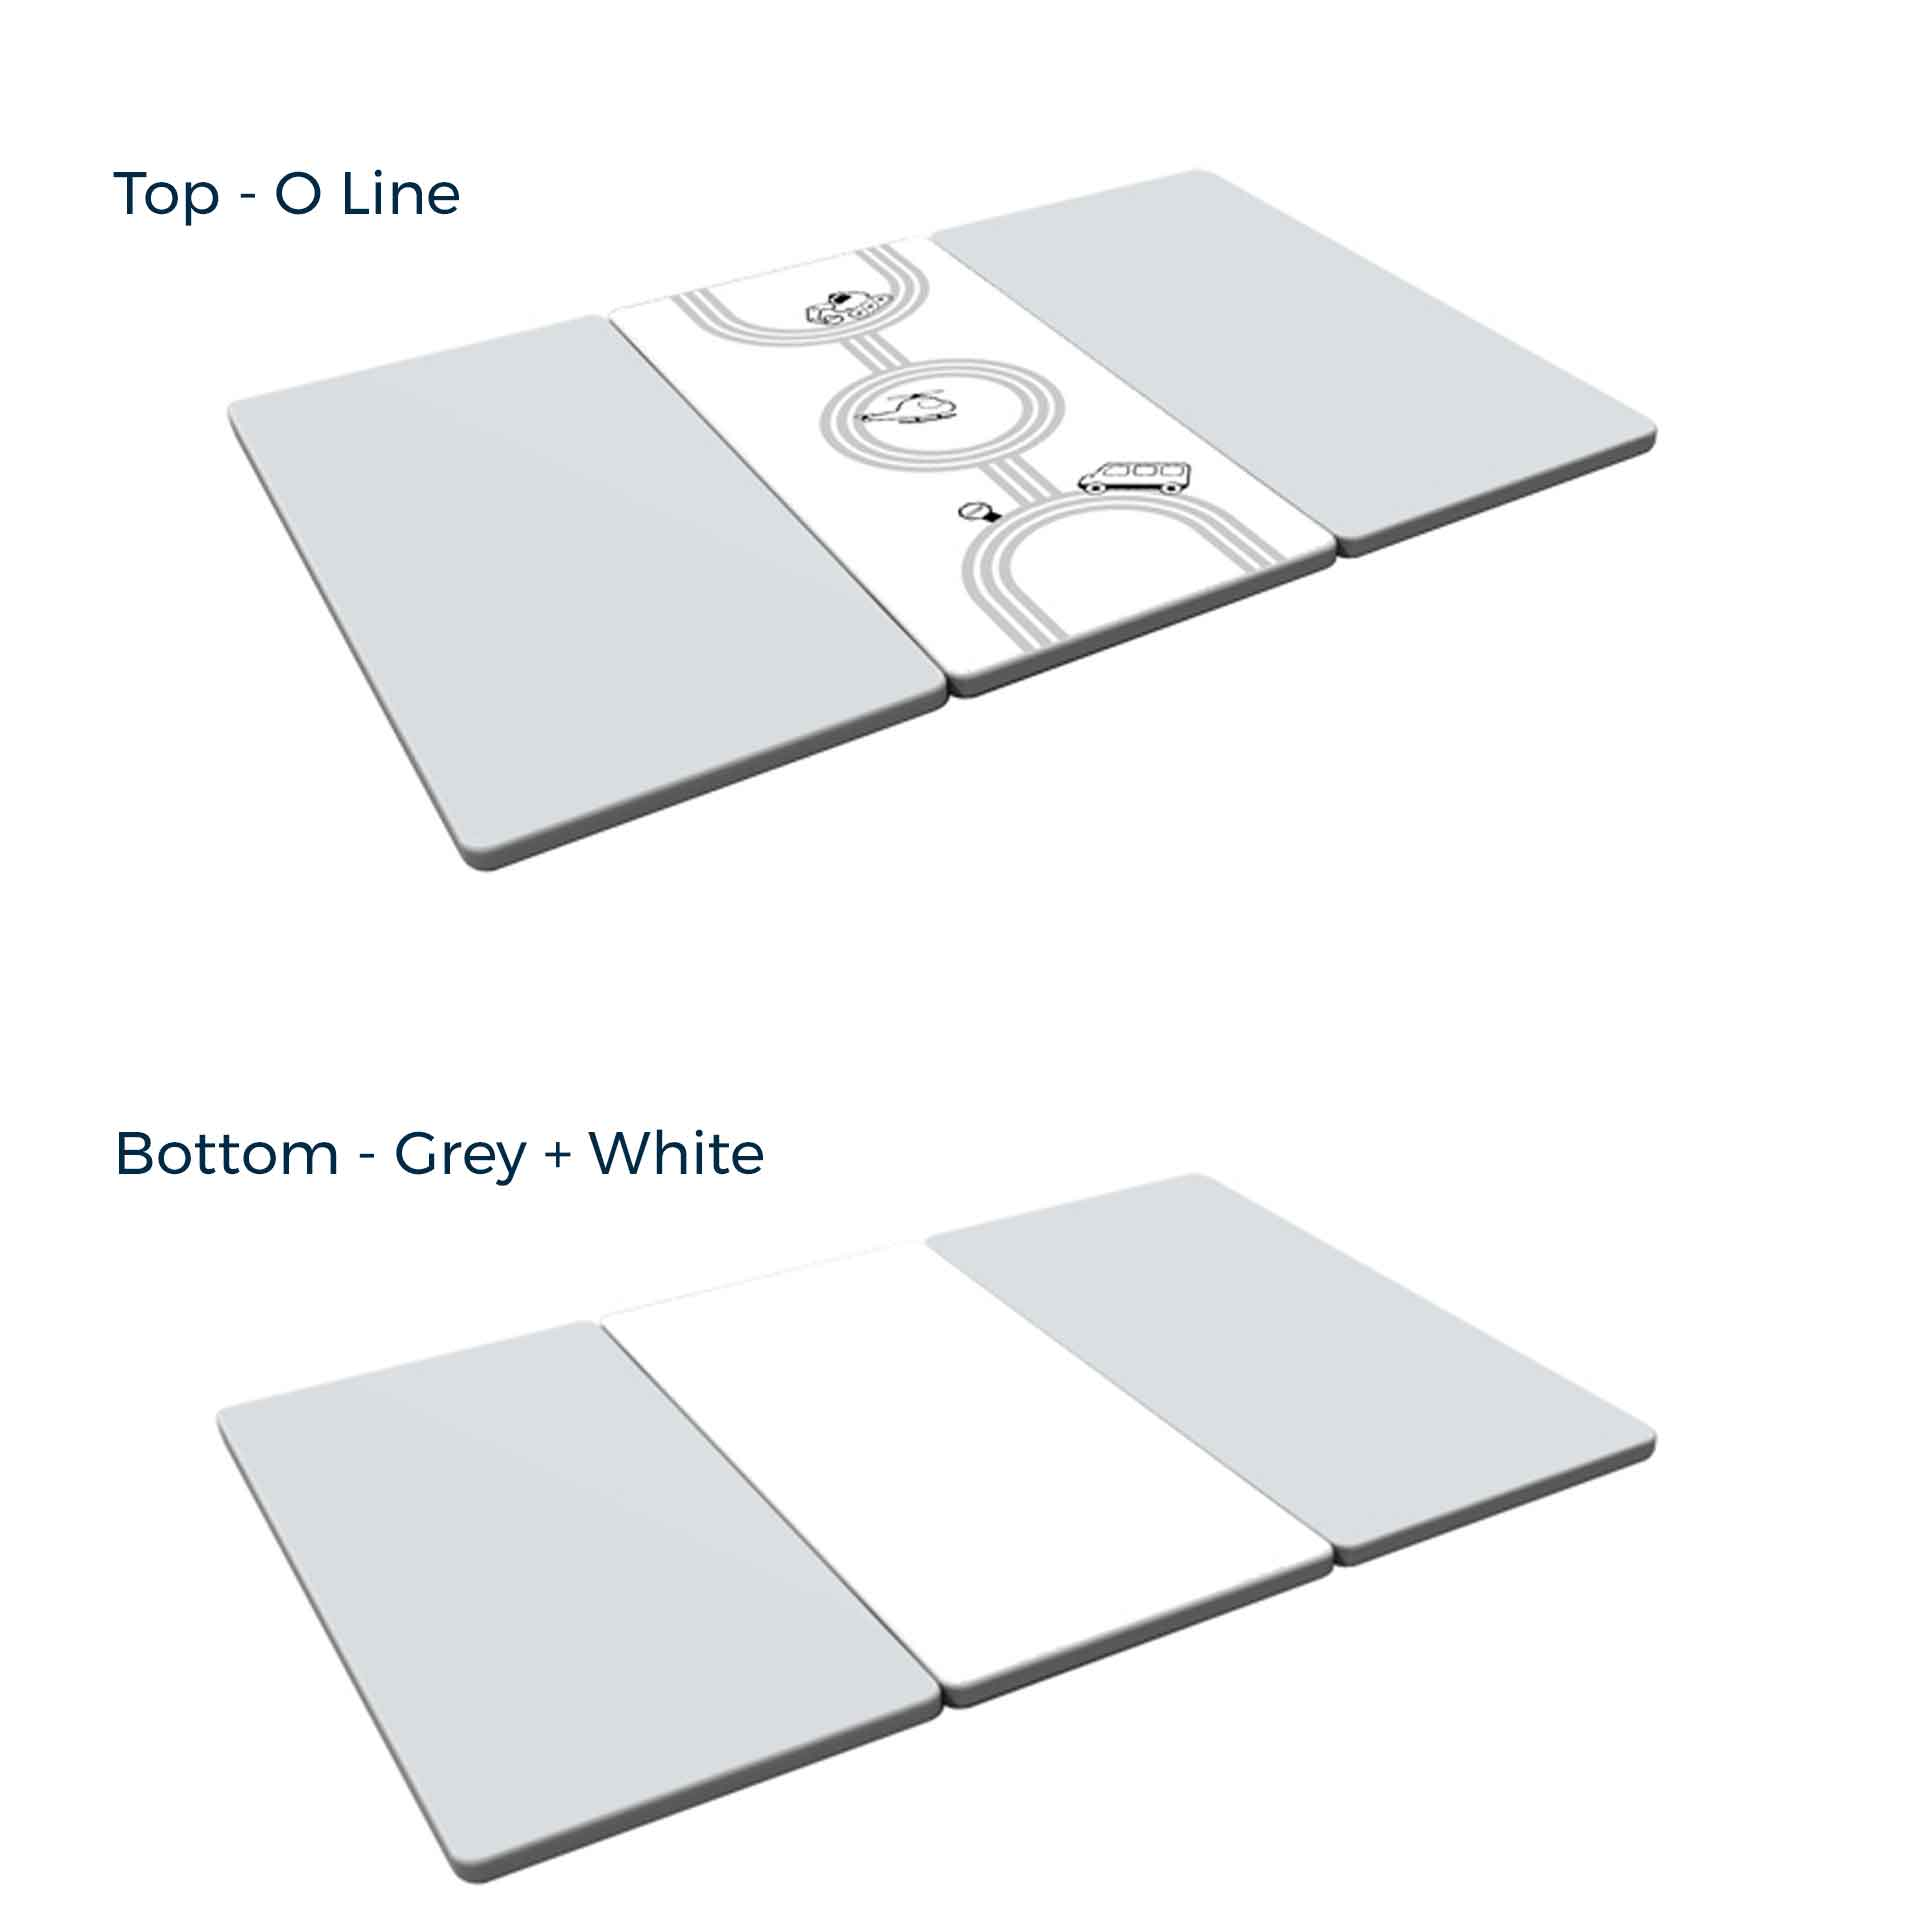 Mono Grey Baby Play Mat (Foldable) - IFAM (Made in South Korea) - Adertek Lifestyle